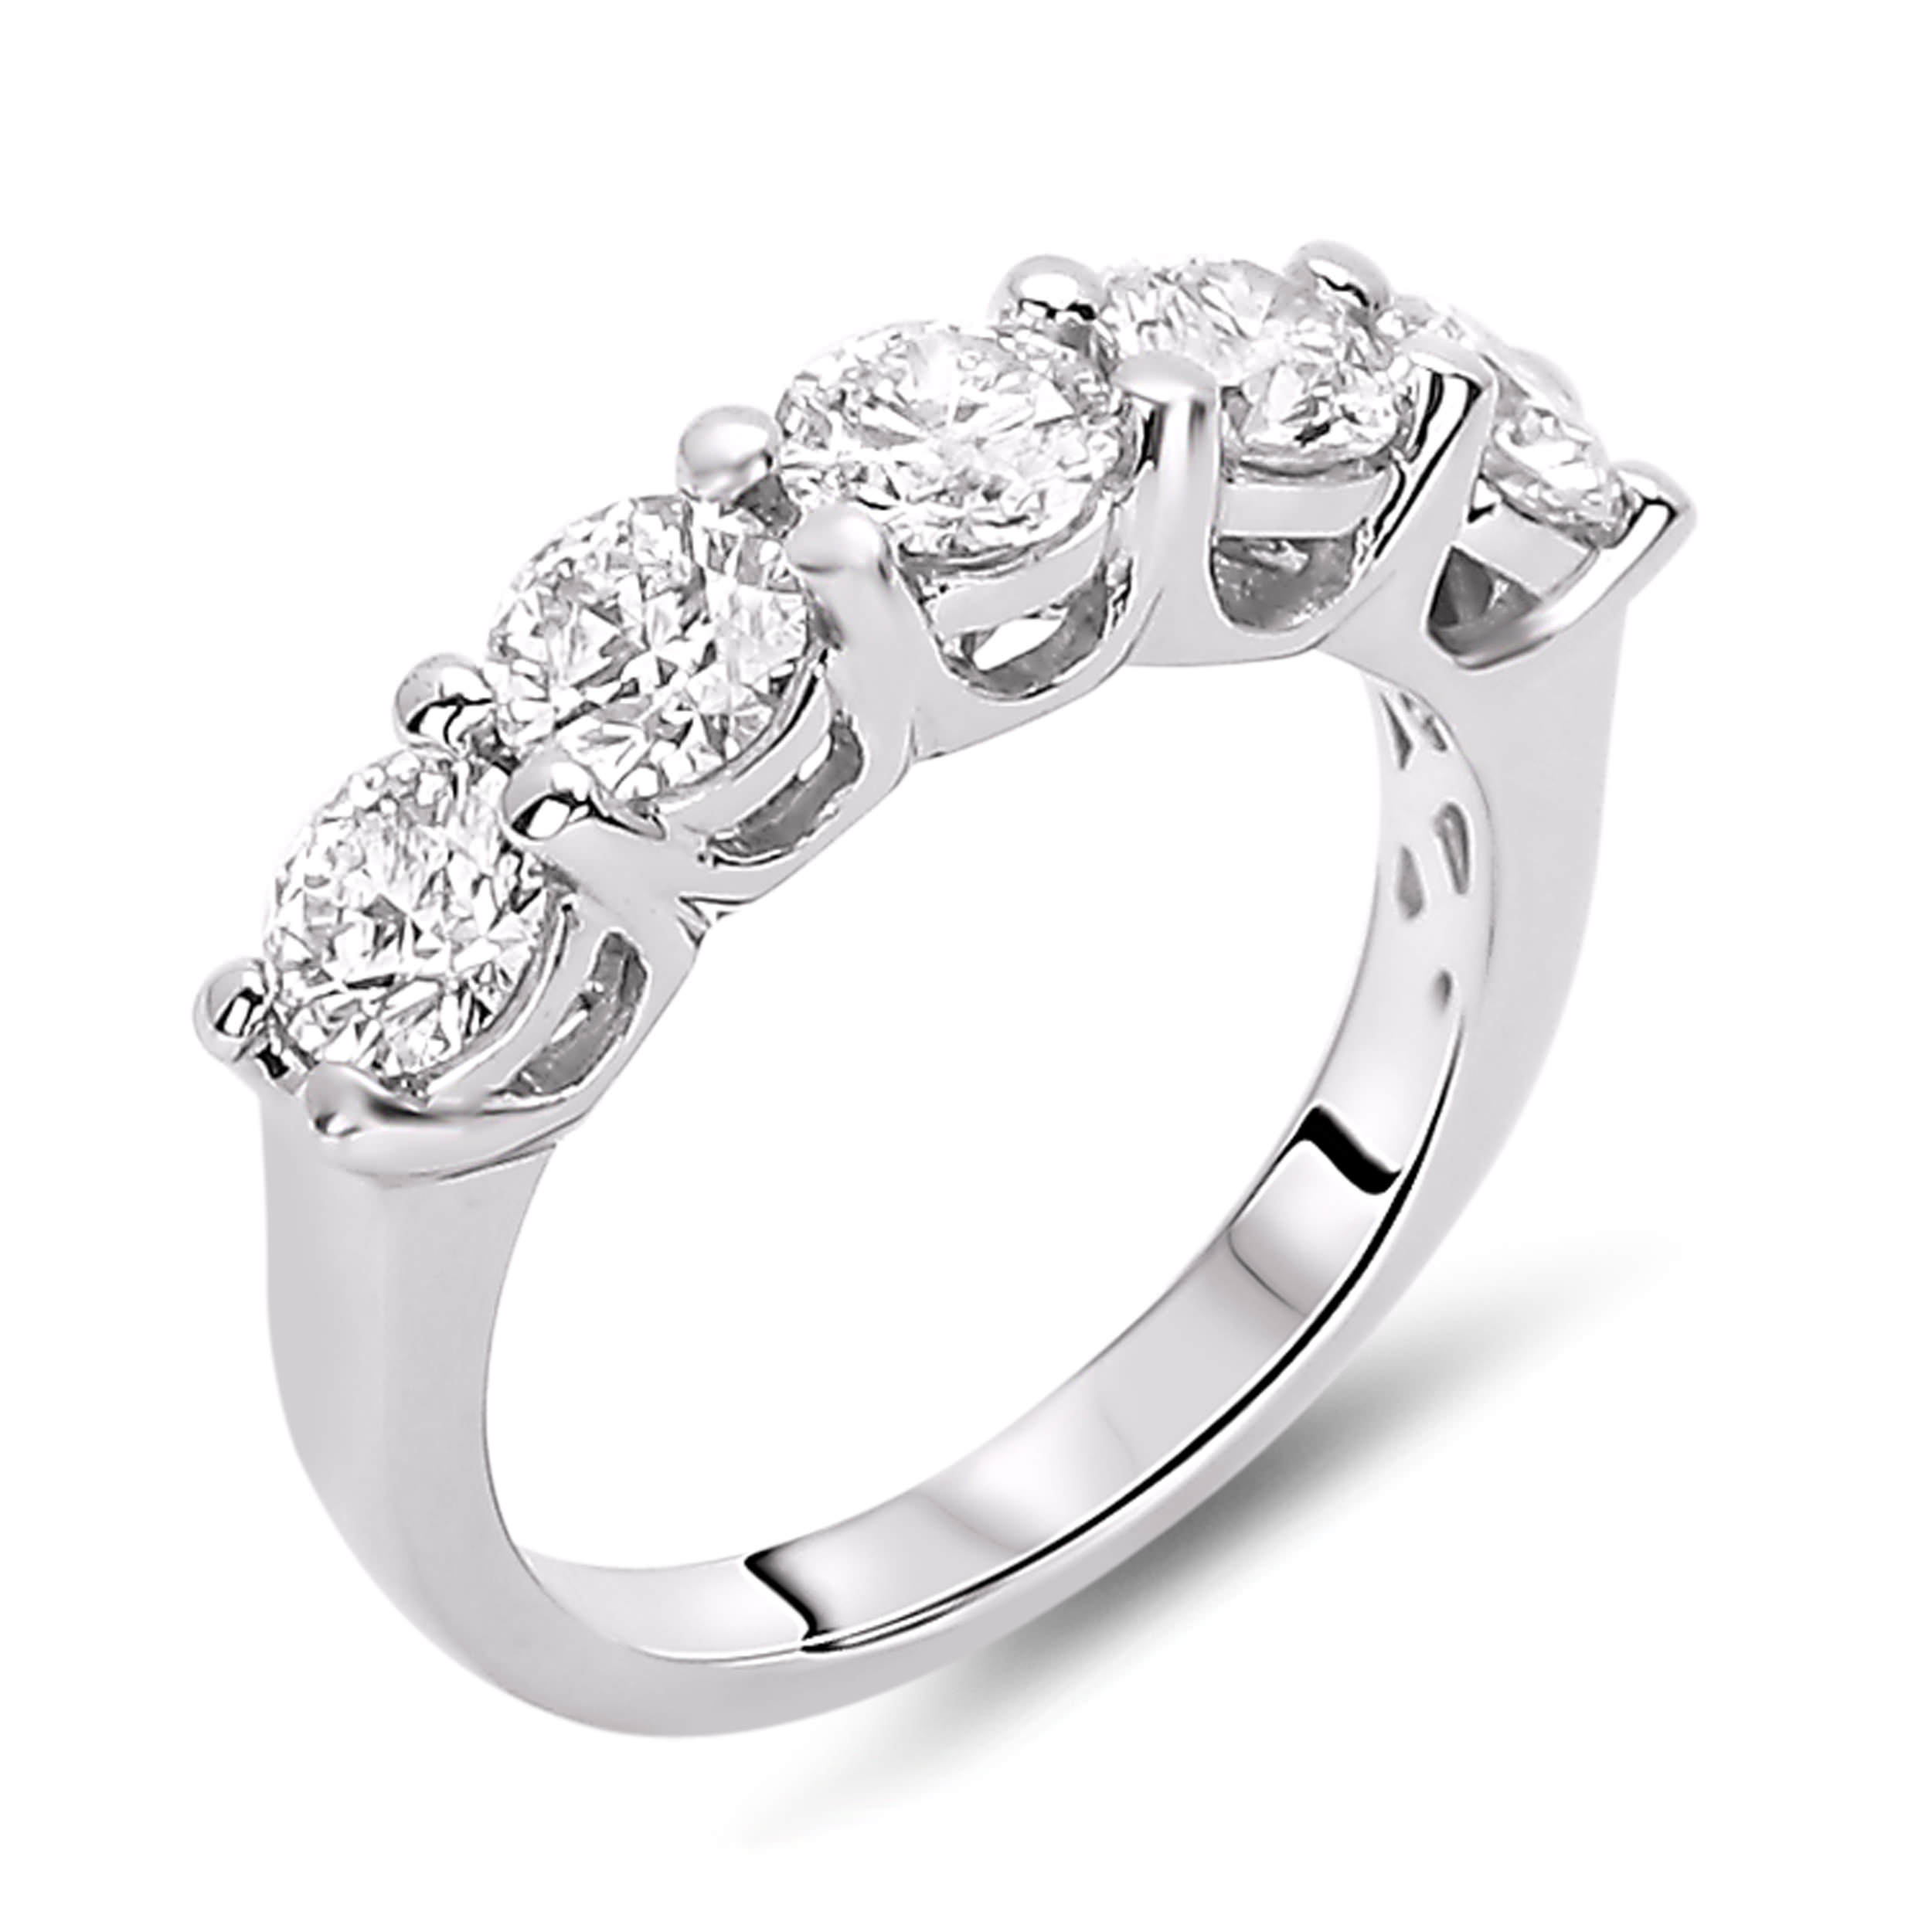 beautiful amazon diamond jewellery set tone two rings tw ct wedding anniversary of bezel